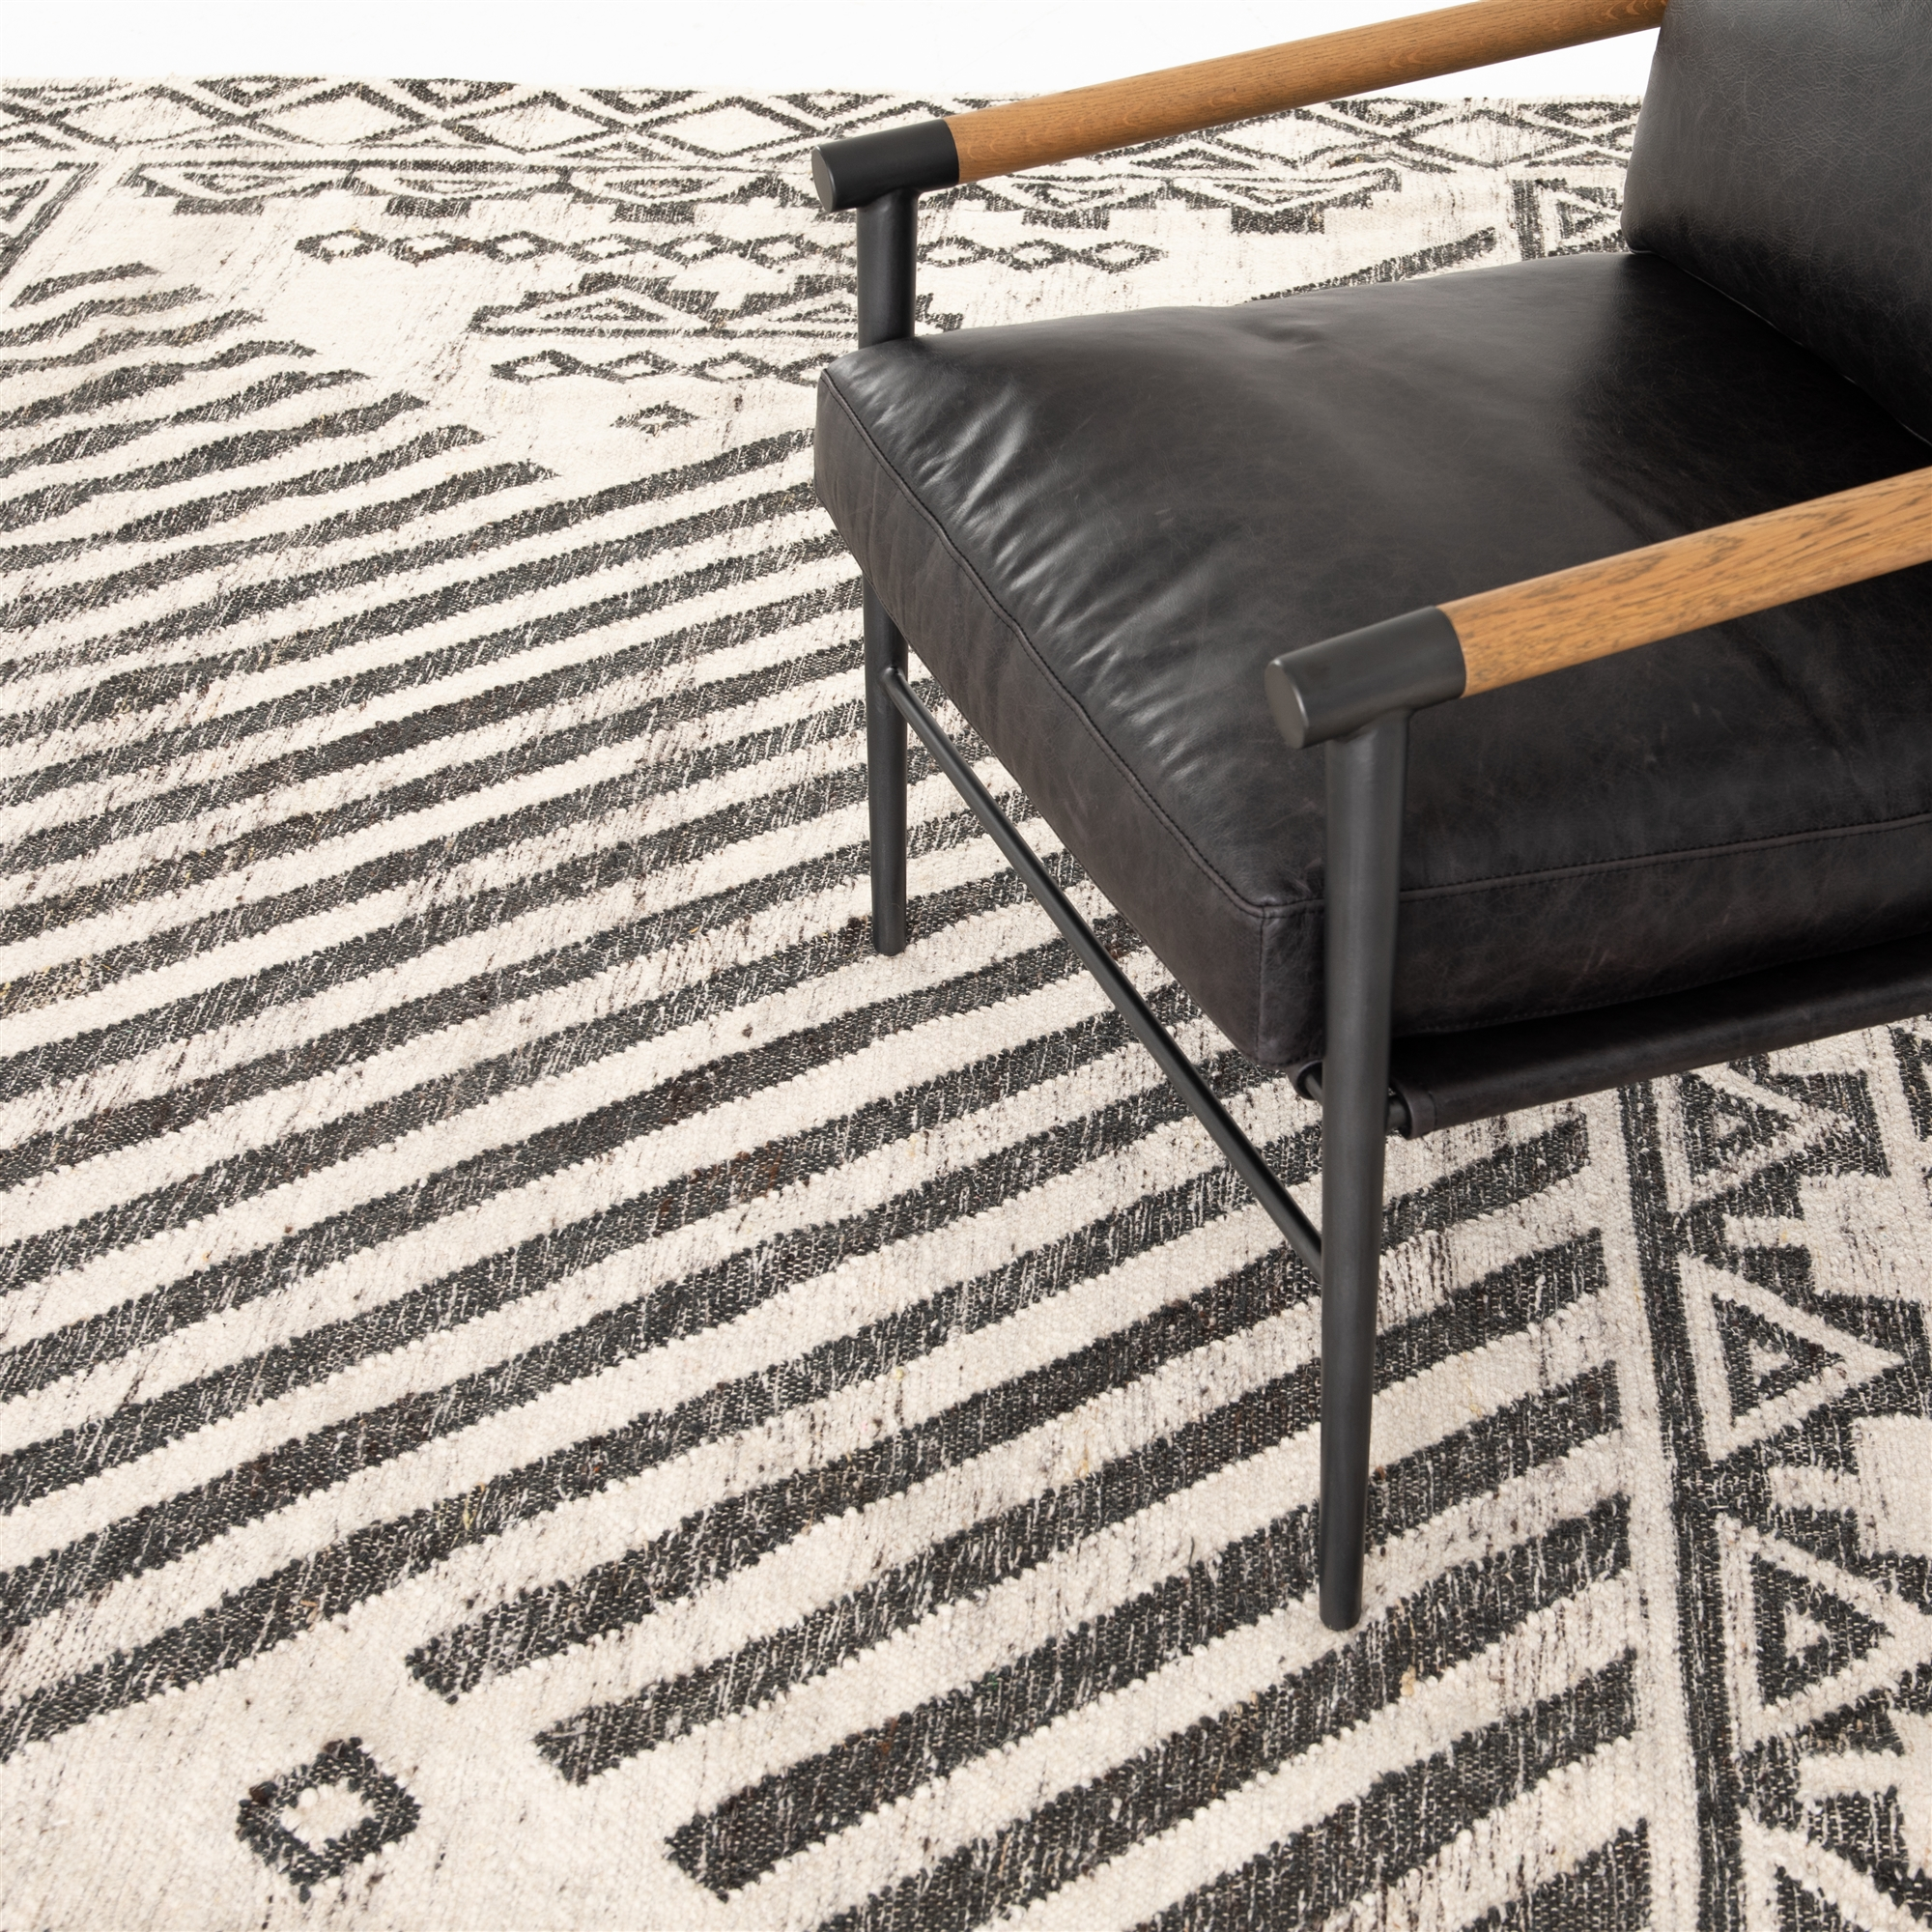 floor decor austin.htm emmaline woven rug  the khazana home austin furniture store  emmaline woven rug  the khazana home